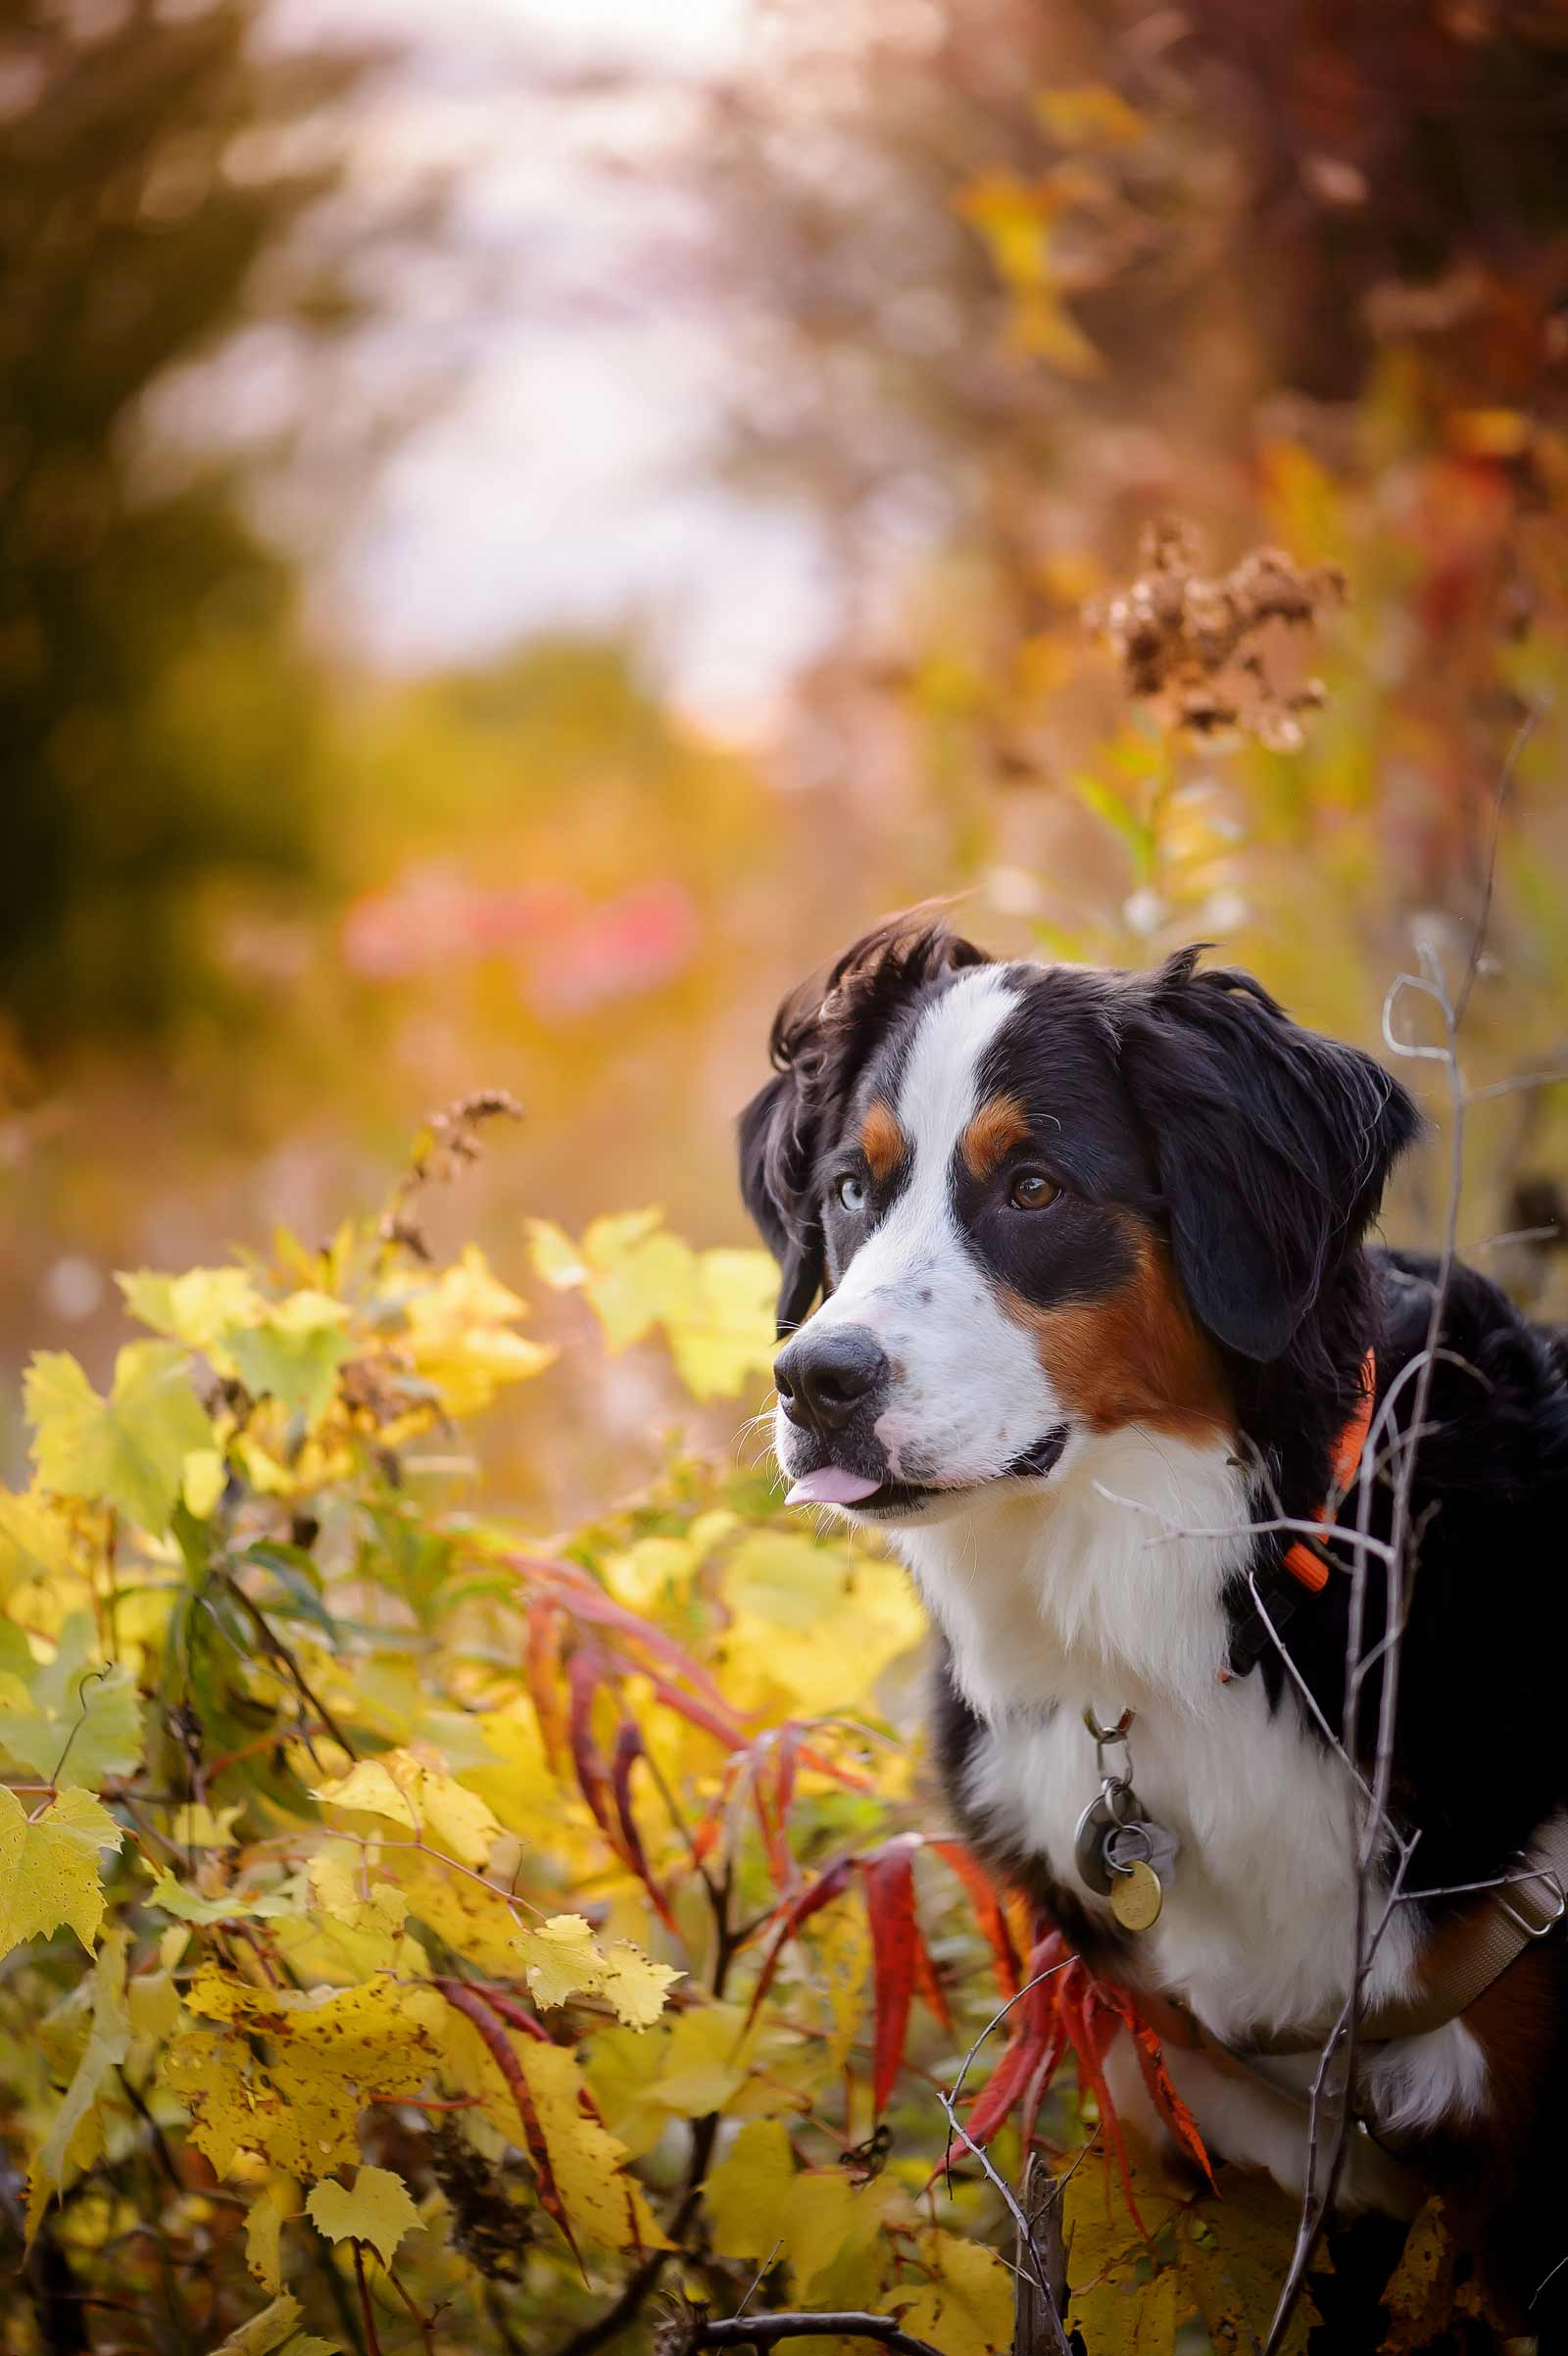 Ottawa Dog Photographer Princess Leia the Bernese mountain dog at Lemieux Island in the fall with her tongue sticking out